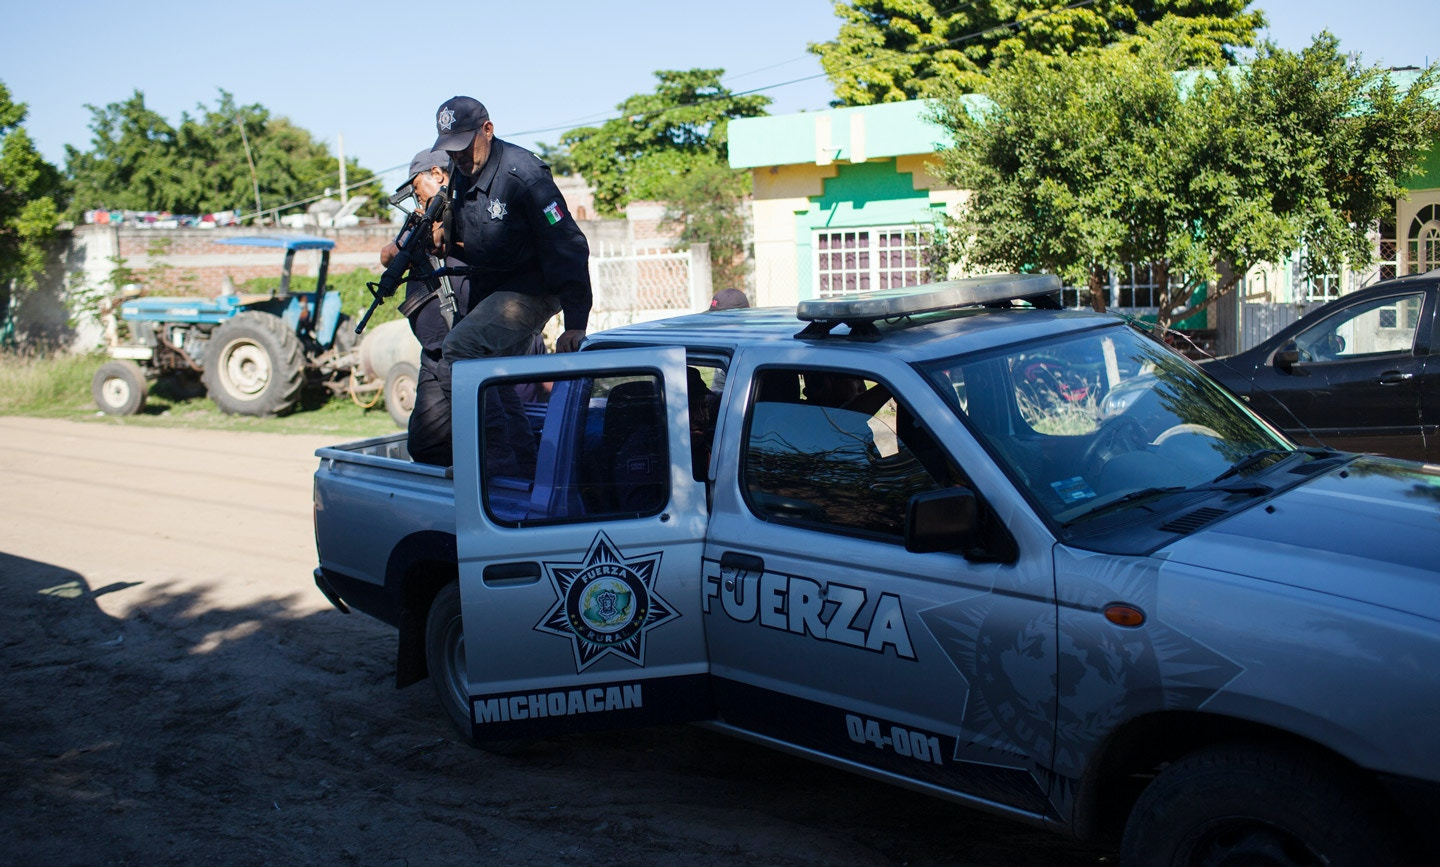 Members of the Fuerza Rural, more specifically a group lead by Hipolito Mora, get out of a truck in front of Mora's house, in La Ruana, Michoacán, Mexico, Tuesday, December 15, 2015. Hipolito Mora was one of the original founder of the autodefensa movement, which saw vigilantes spread across the state of Michoacán and drive out the cartel group the 'Knights of Templar'. Since the uprising began in 2013, other criminal groups have filled the space of the previous cartel and many look at the autodefensa movement as a failure. Mora has had many challenges over the last three years, including being sent to jail twice and having his son killed in a shootout Dec. 16, 2014 during a shootout with a rival group.<br /> (Brett Gundlock/Boreal Collective)